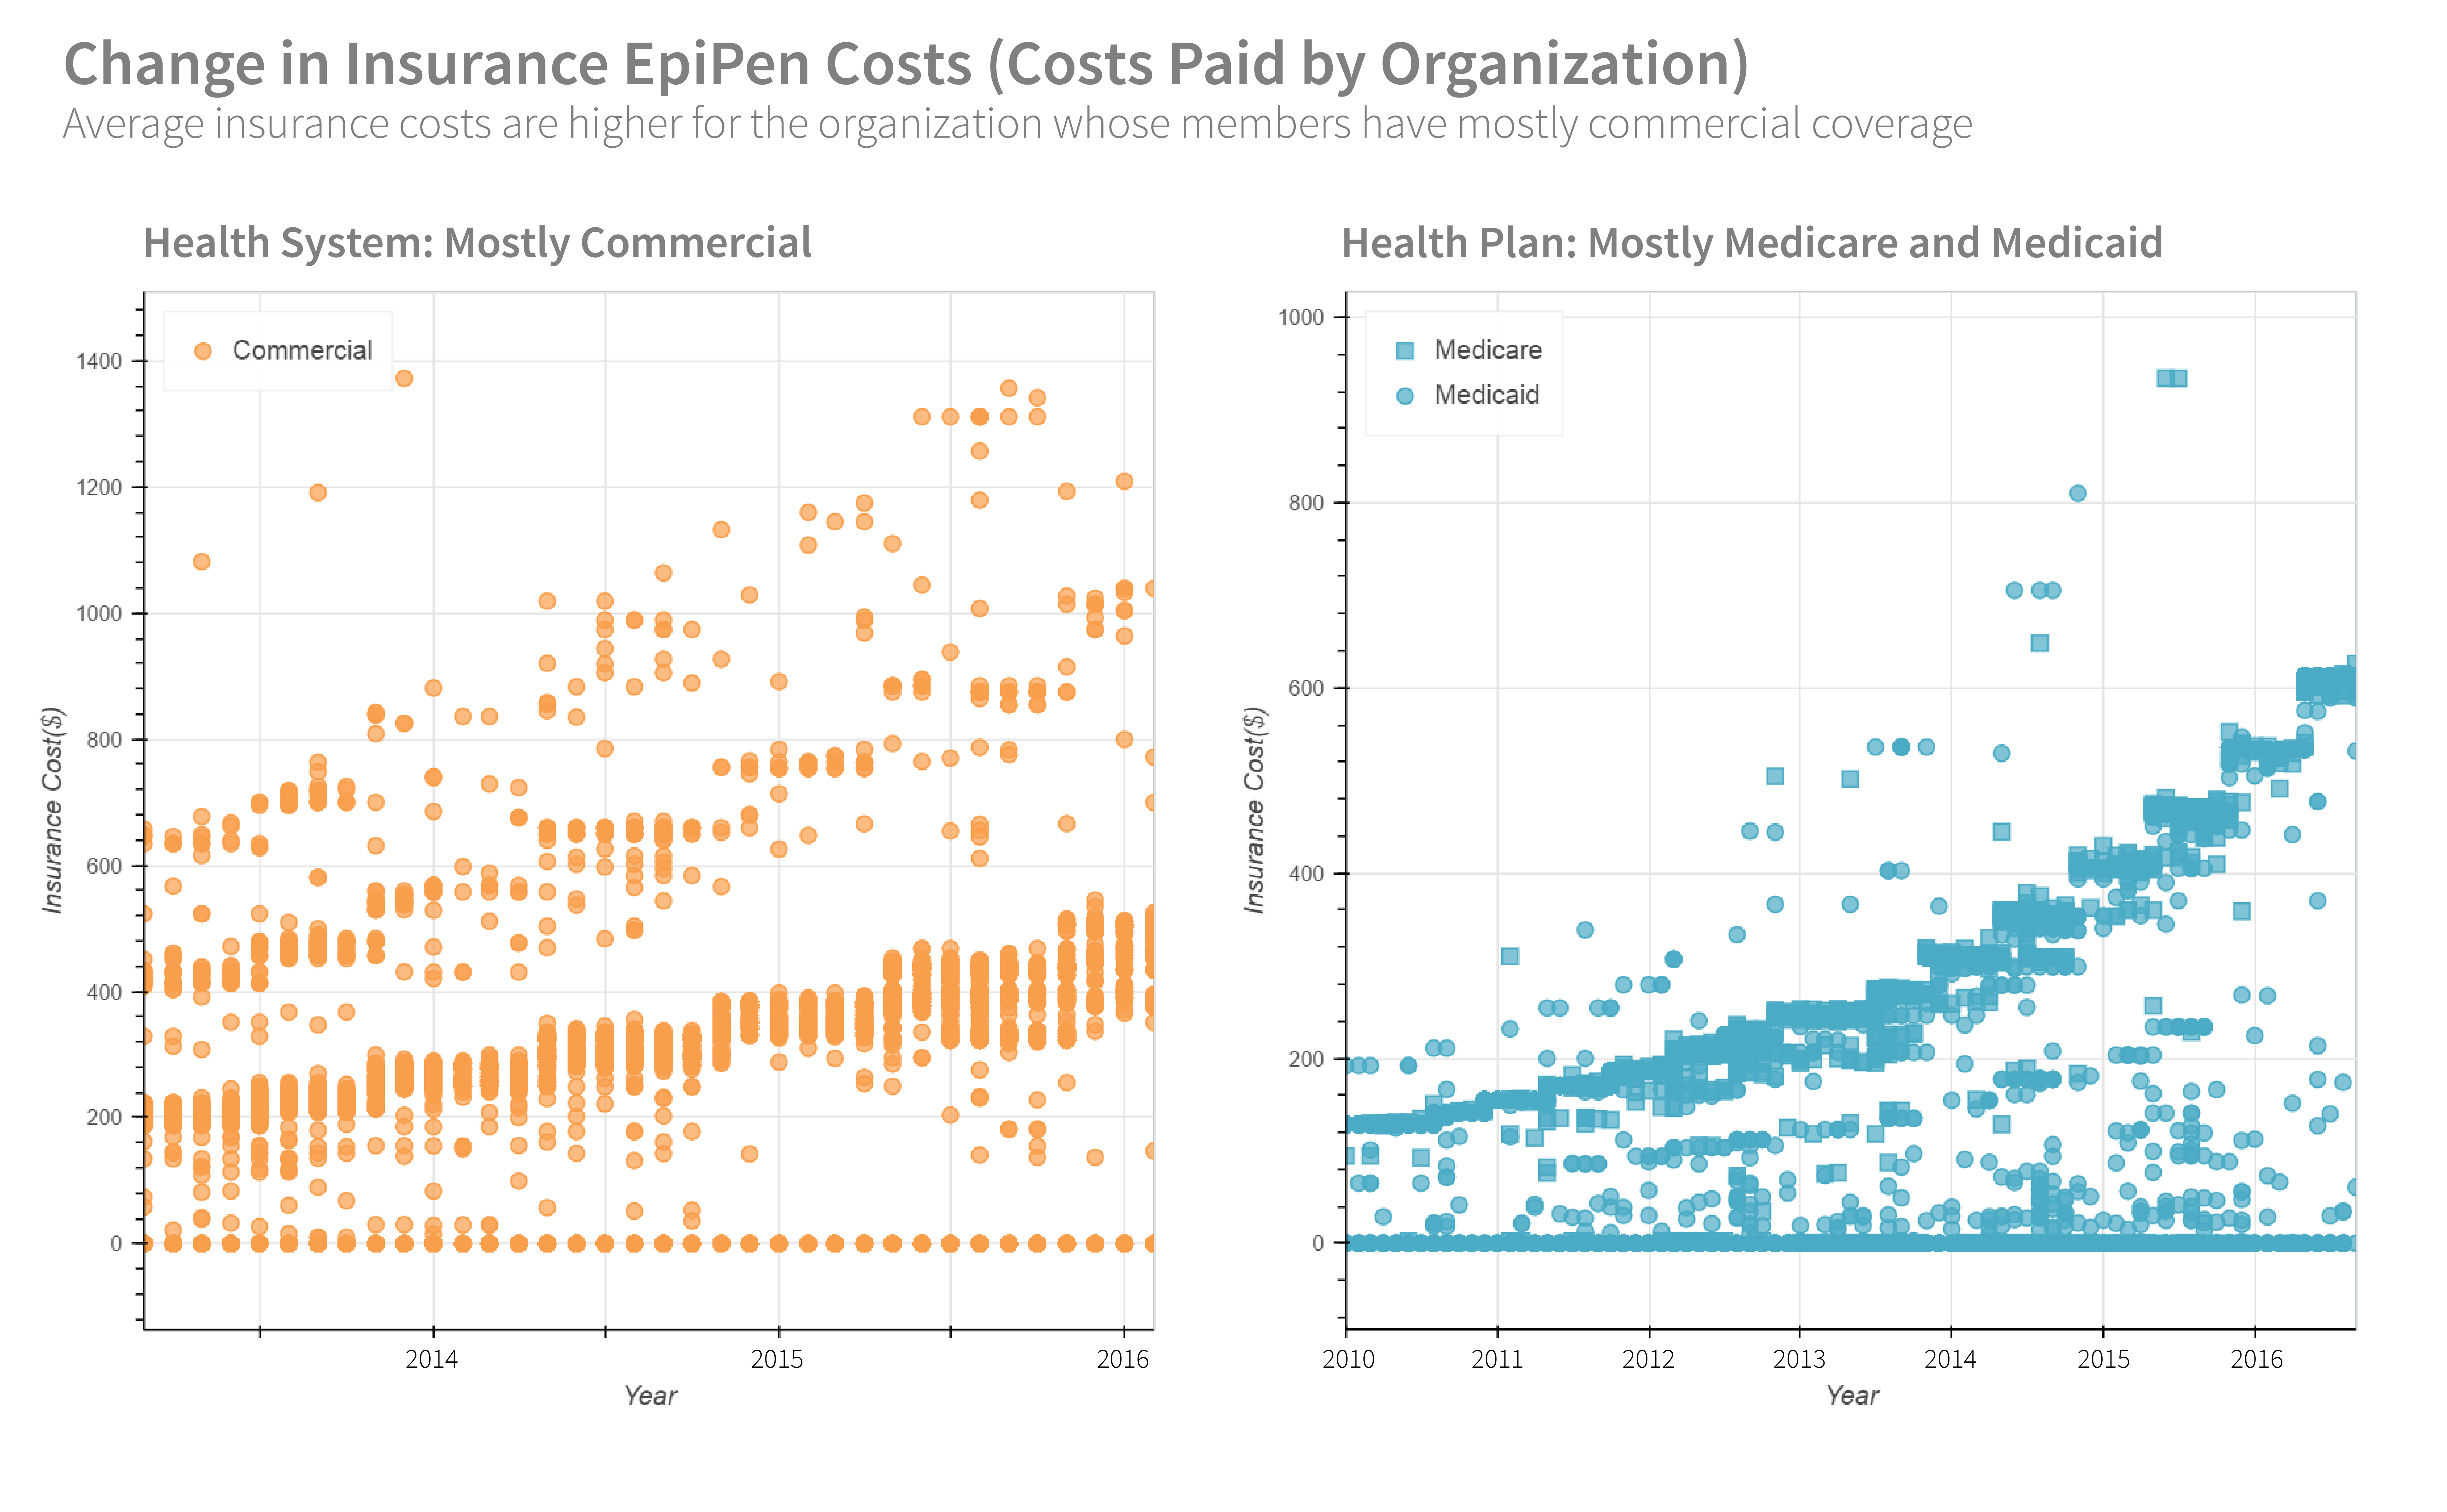 Changes in Insurance EpiPen Costs (Costs Paid by Organization)